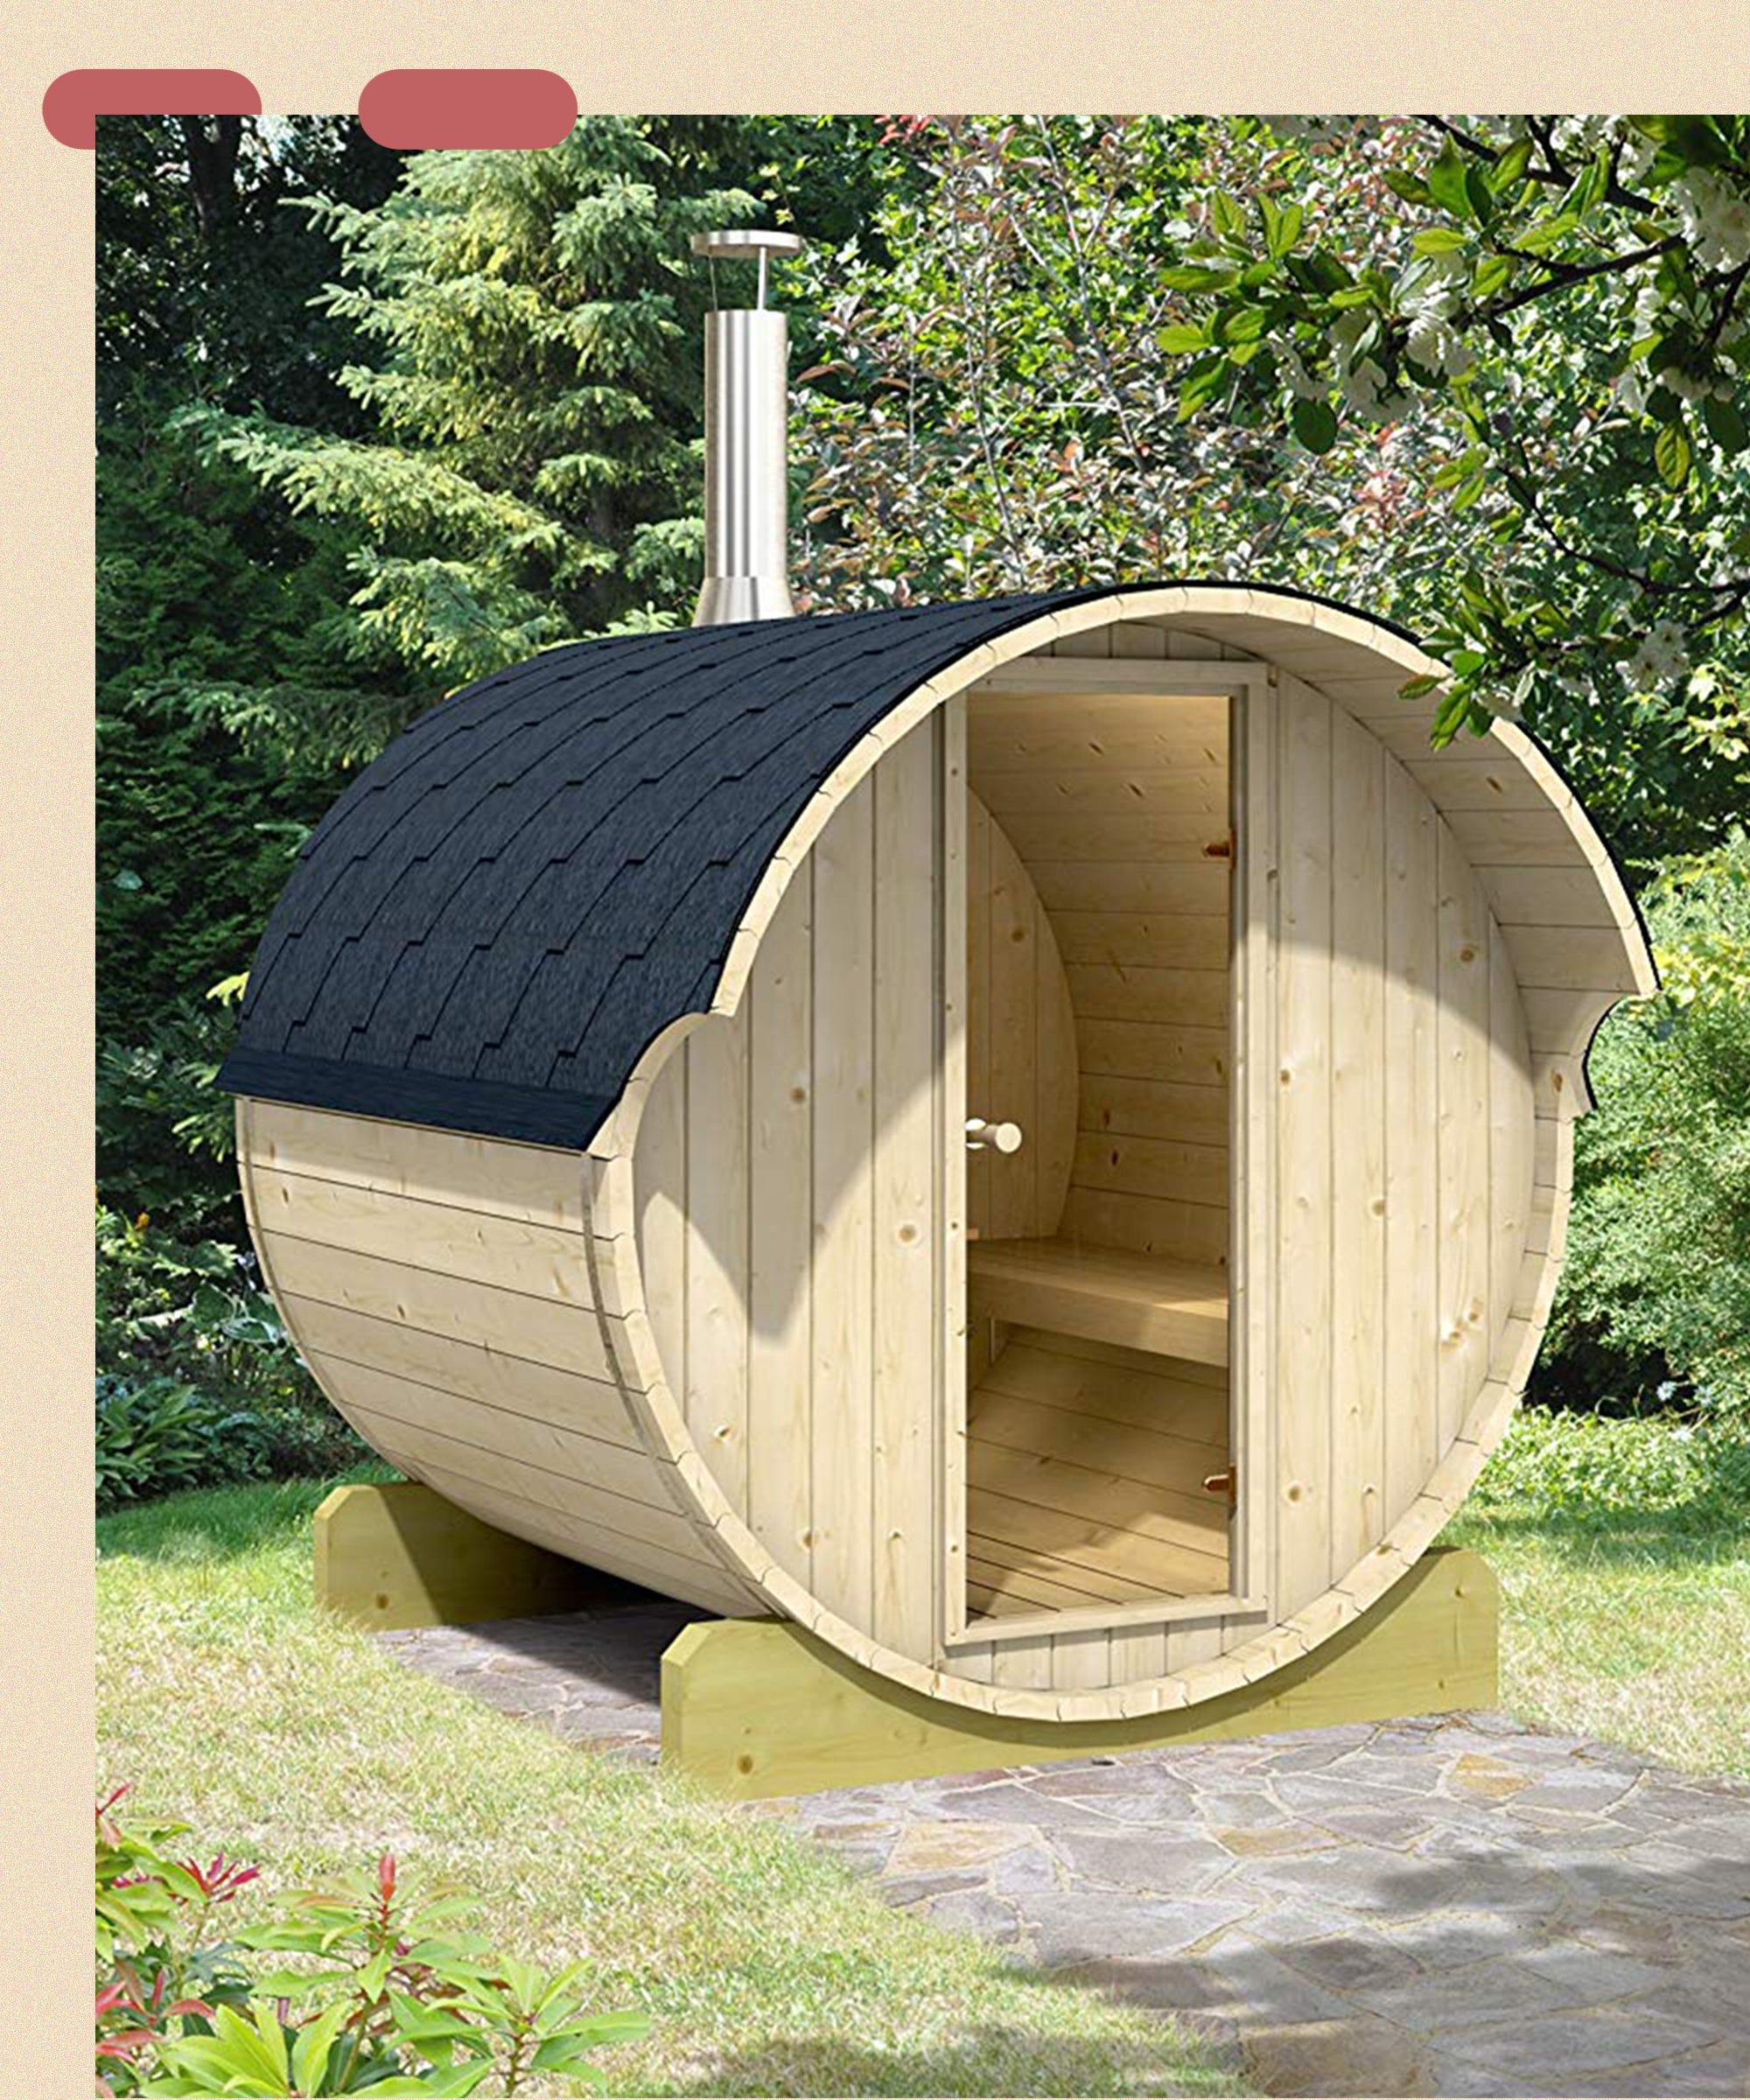 Remember The Mini Guesthouse That Sold Out On Amazon? Here's The Sauna To Match